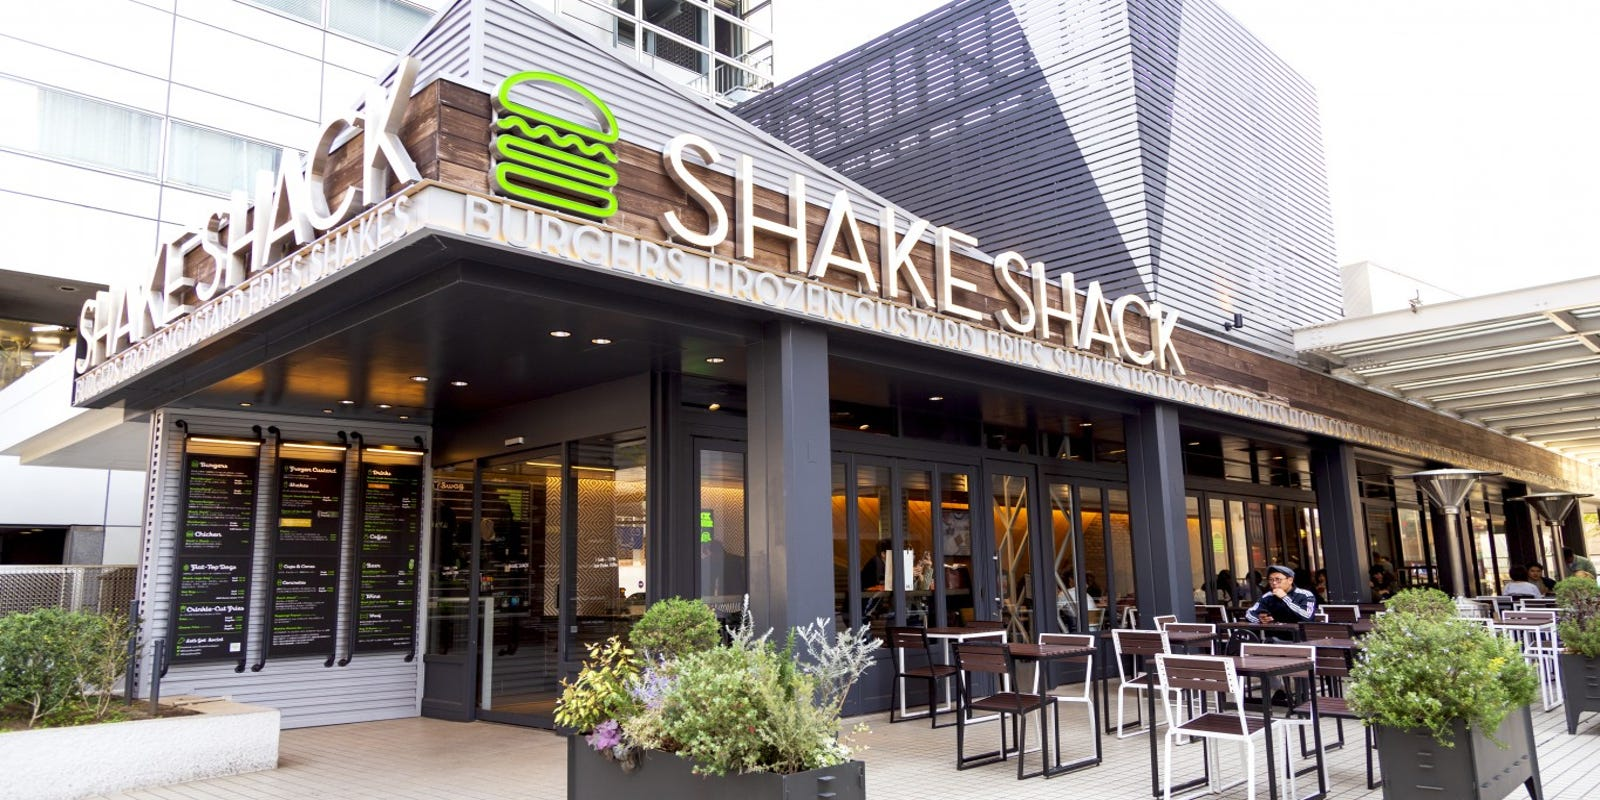 Shake Shack manager sues NYPD, New York City over false claims his store poisoned officers